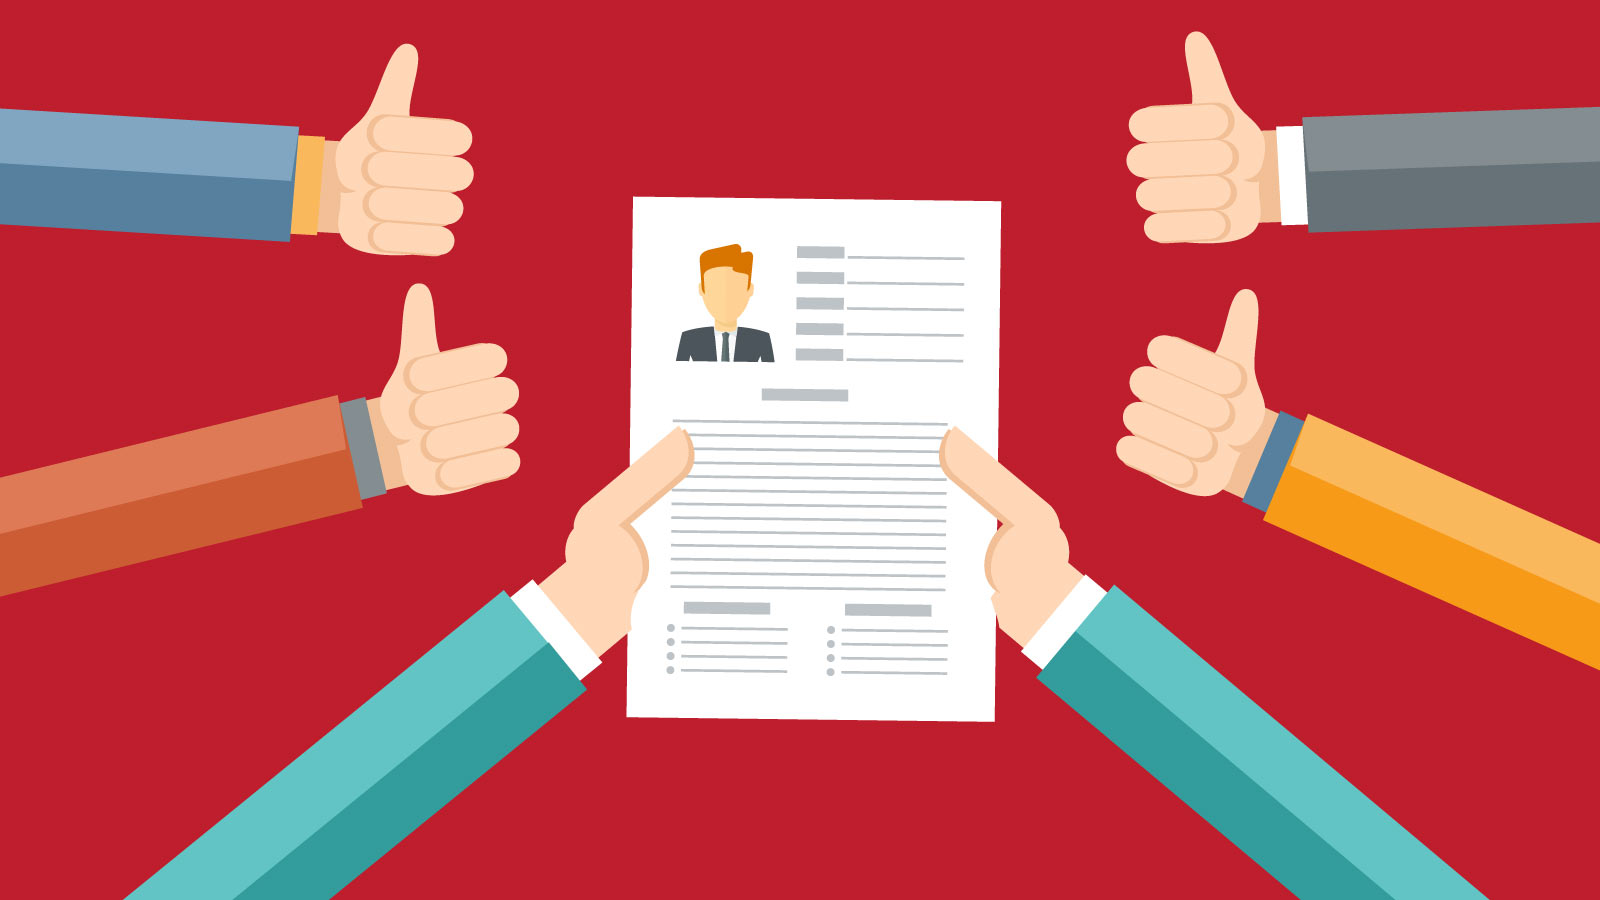 7 mistakes you should avoid in your CV